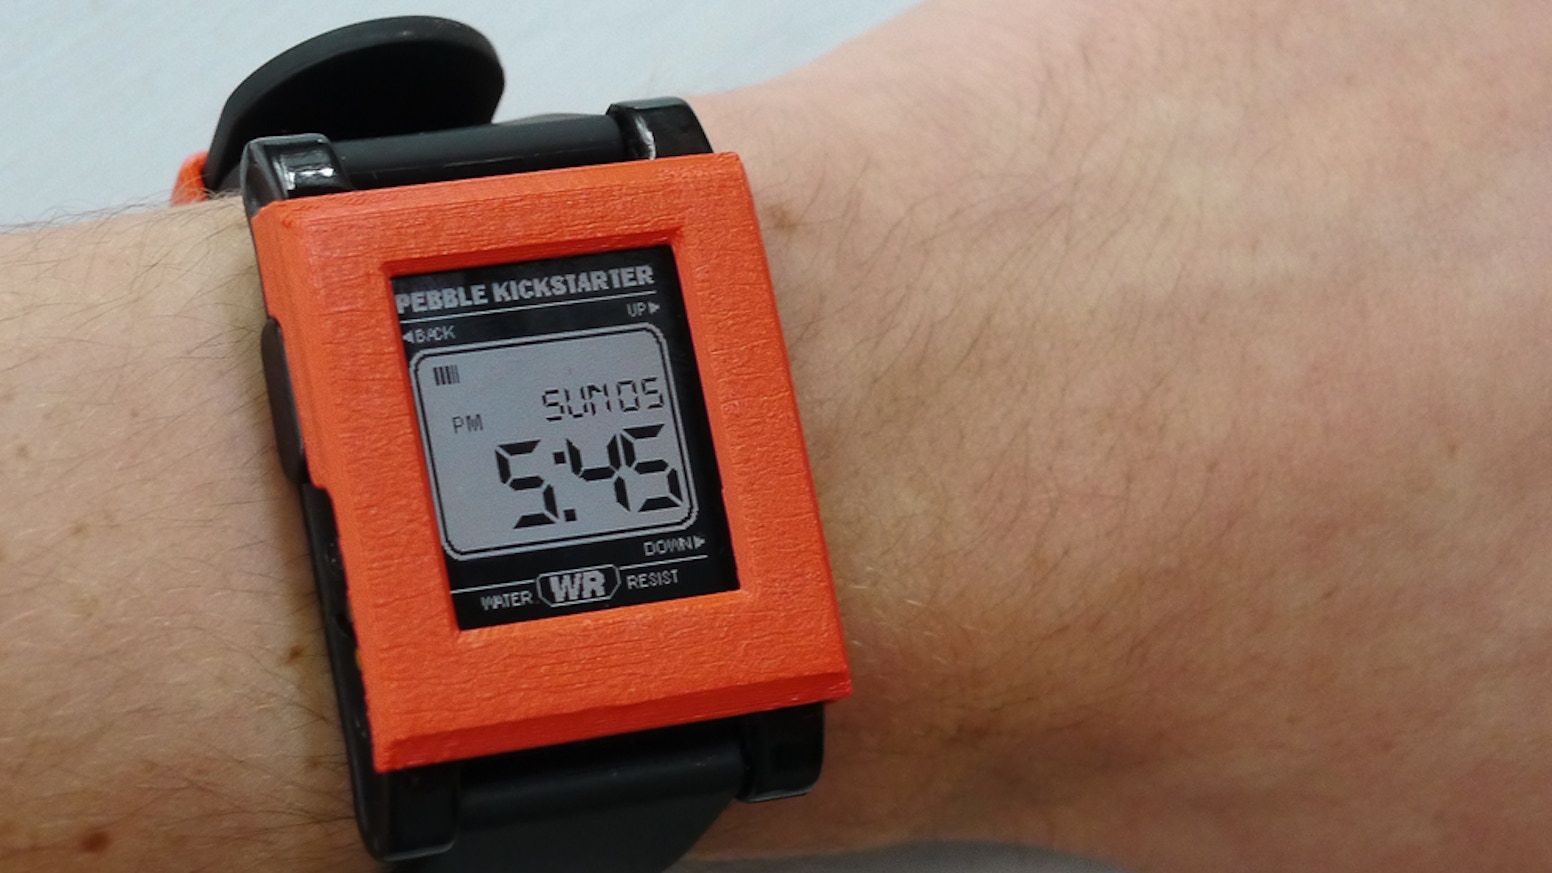 3D printed interchangeable Pebble watch covers to give it a fresh, new look.